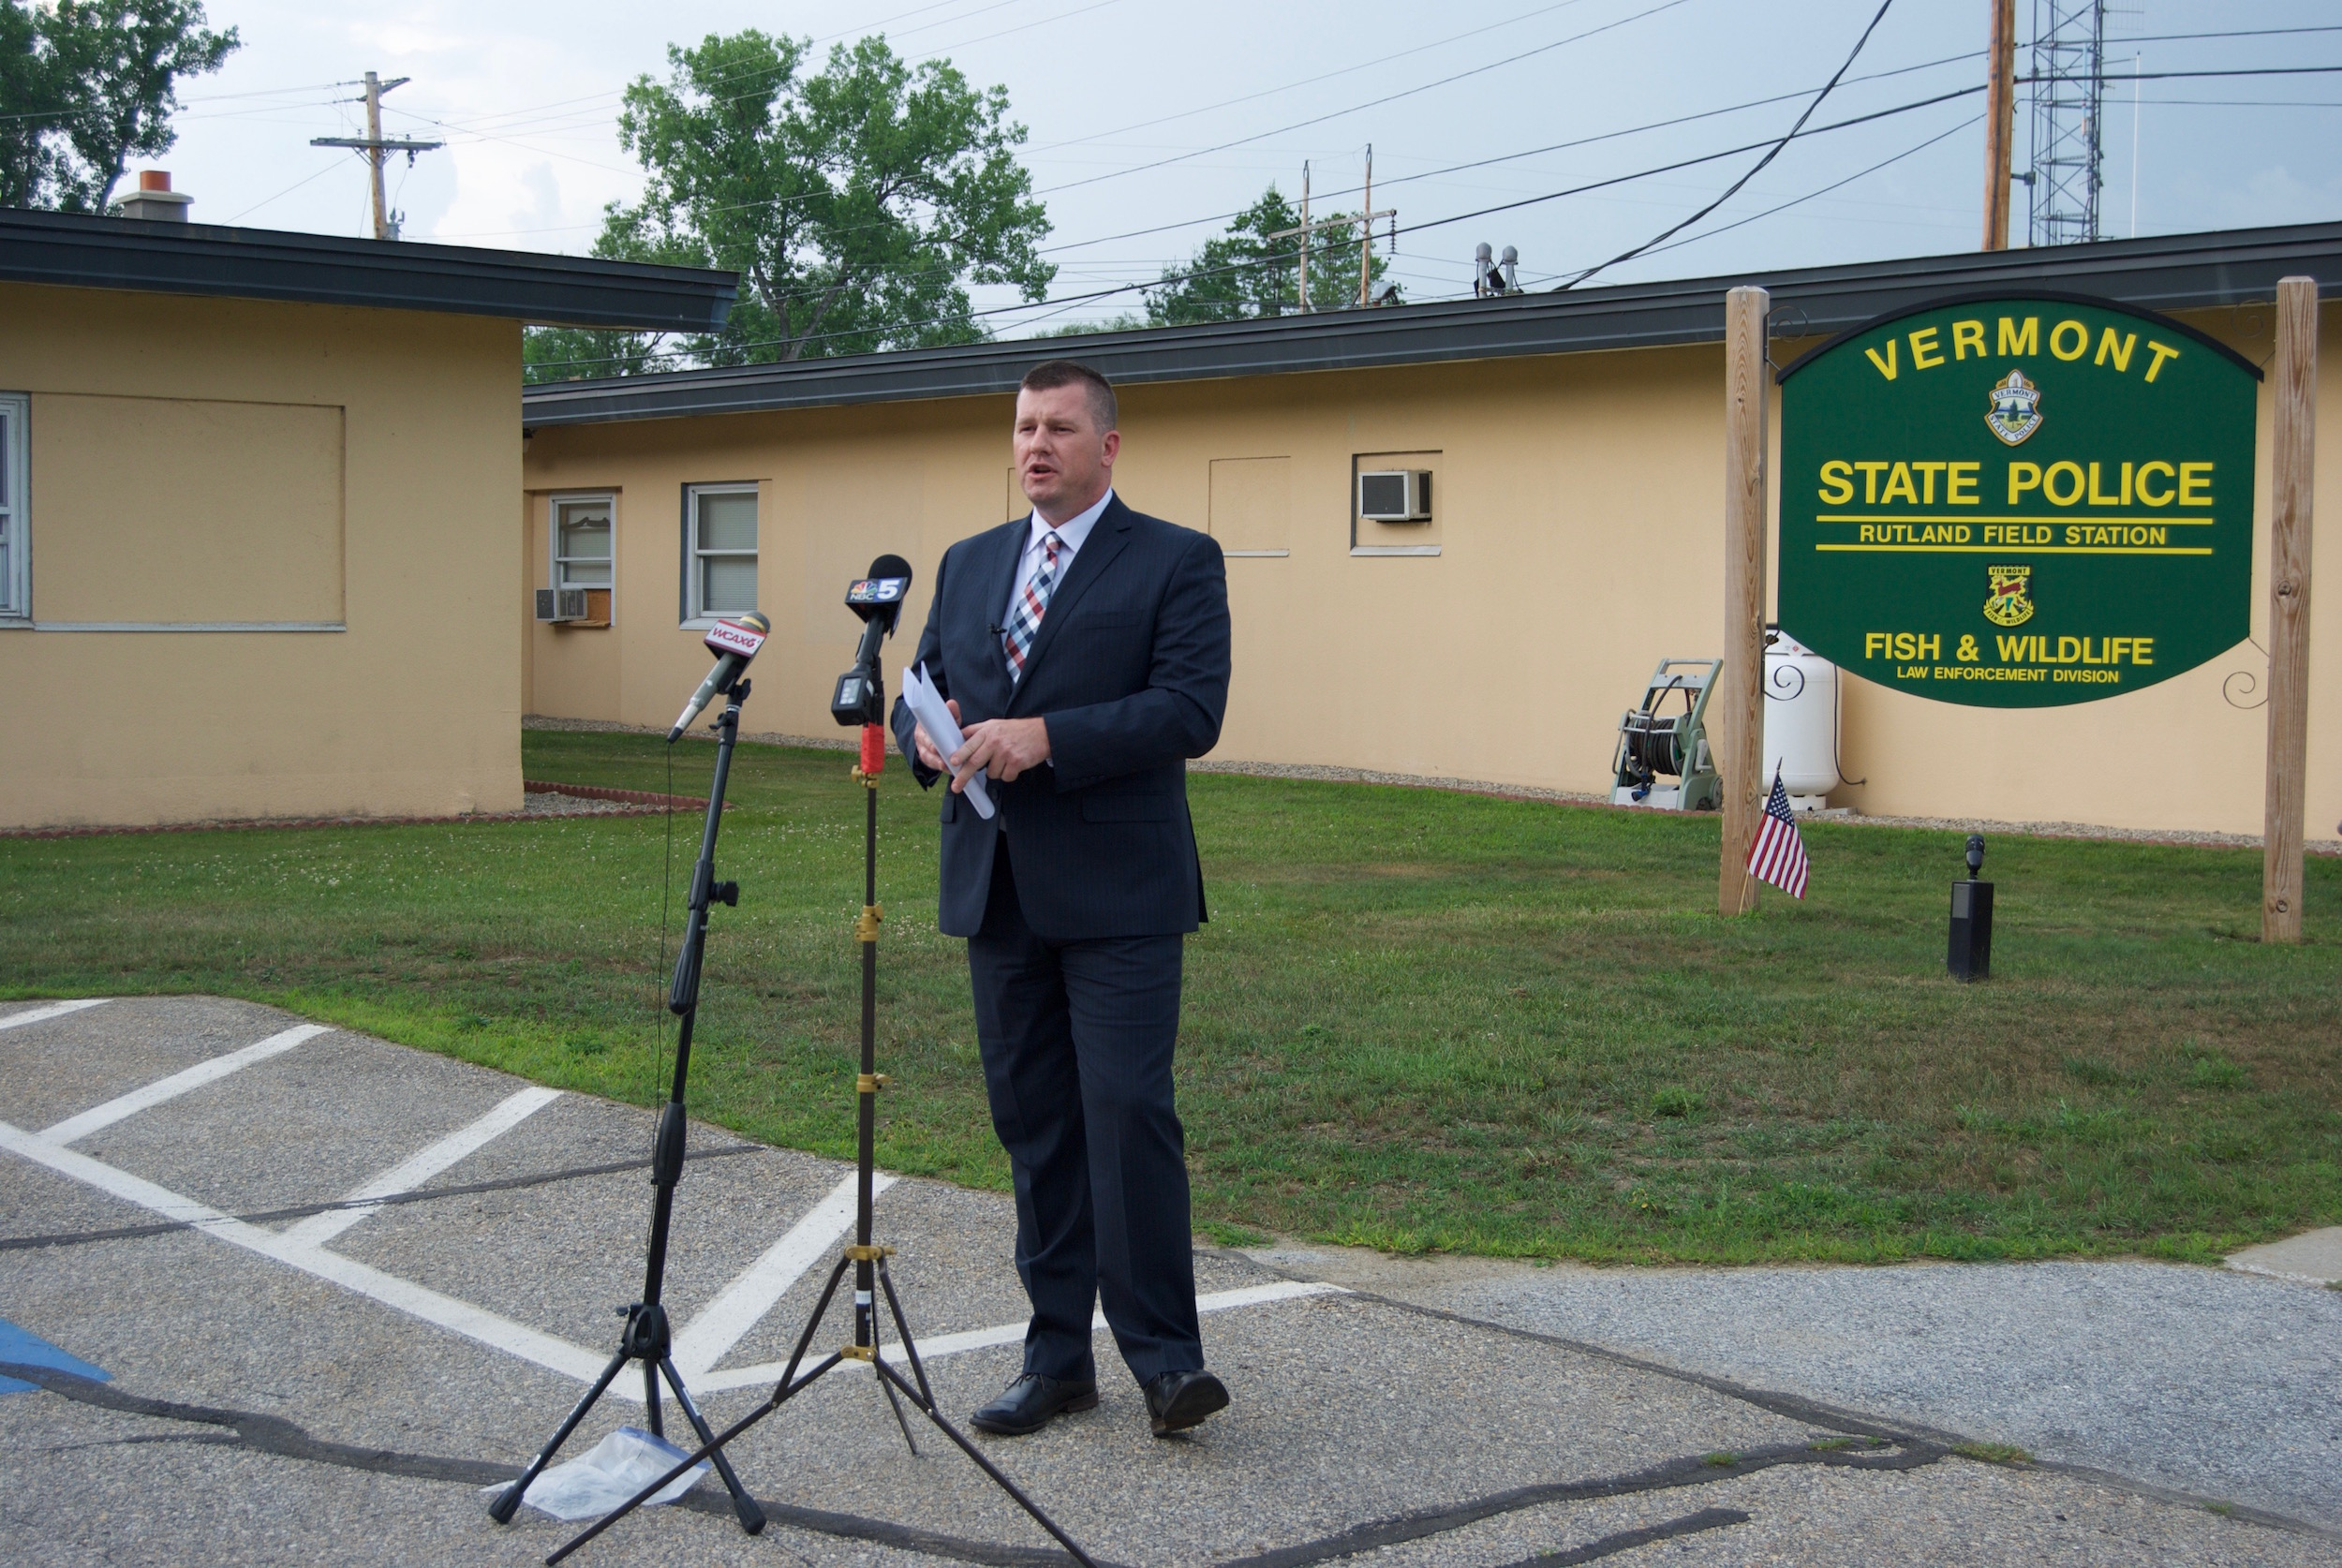 Major Dan Trudeau briefs the media on the Vermont State Police investigation into an officer-involved shooting in Rutland City early Wednesday. Photo by Emma Cotton/VTDigger